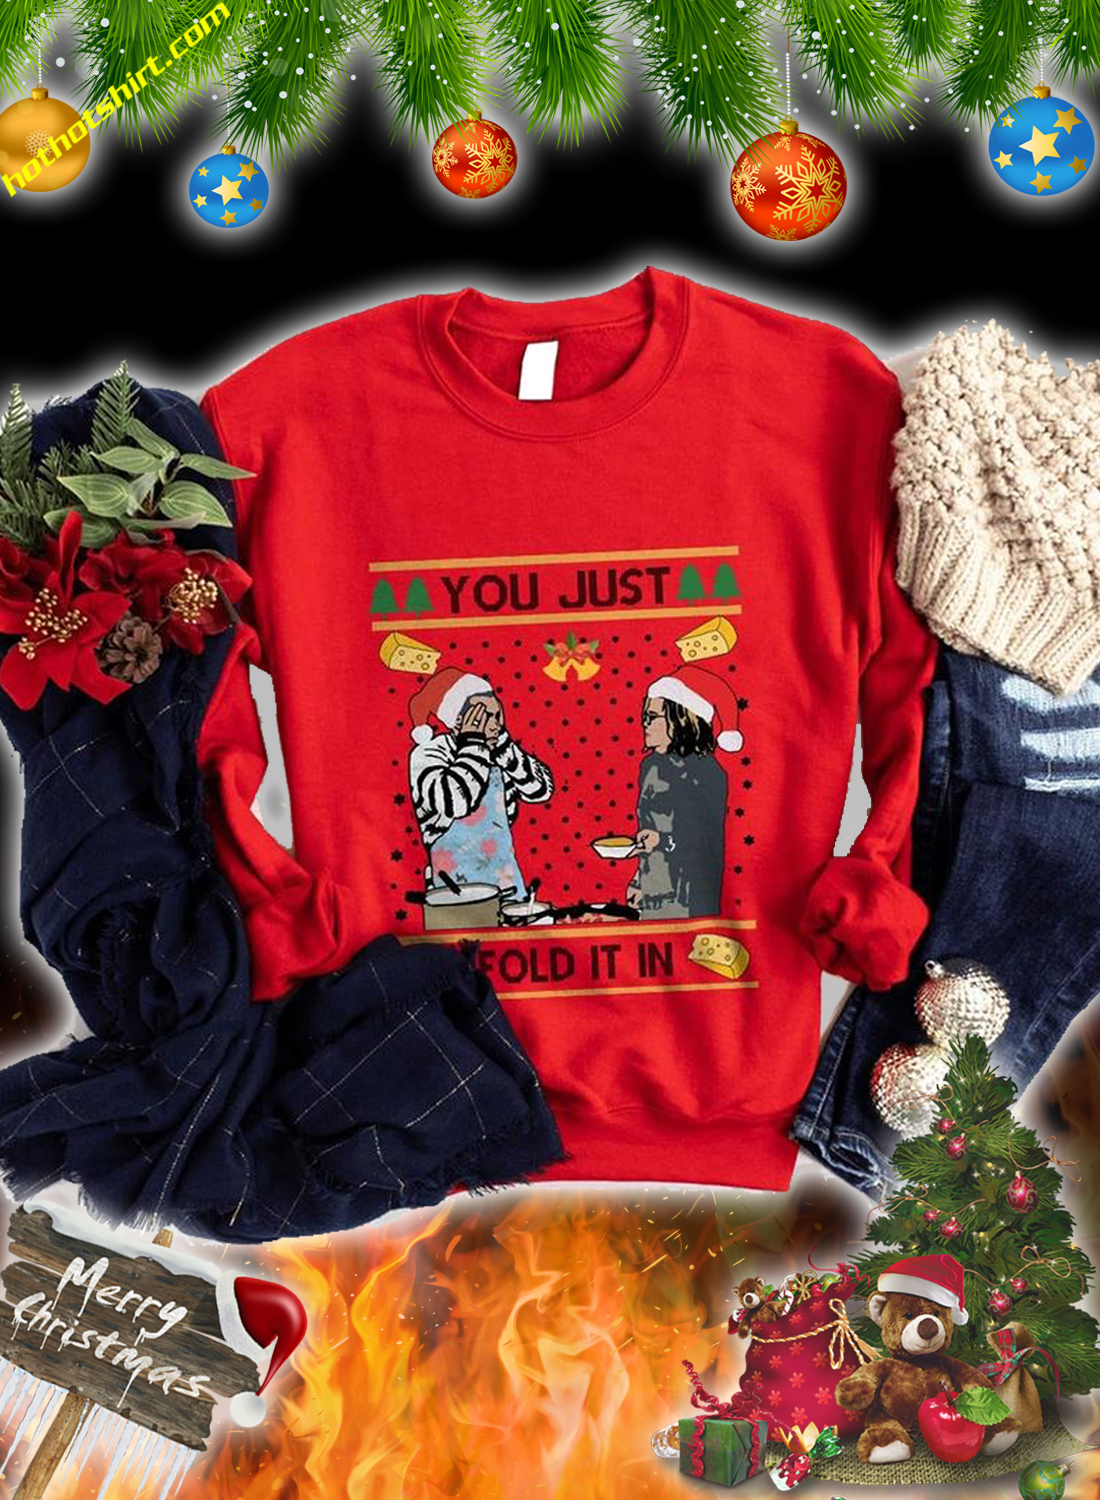 You just fold it in christmas sweatshirt and jumper 4